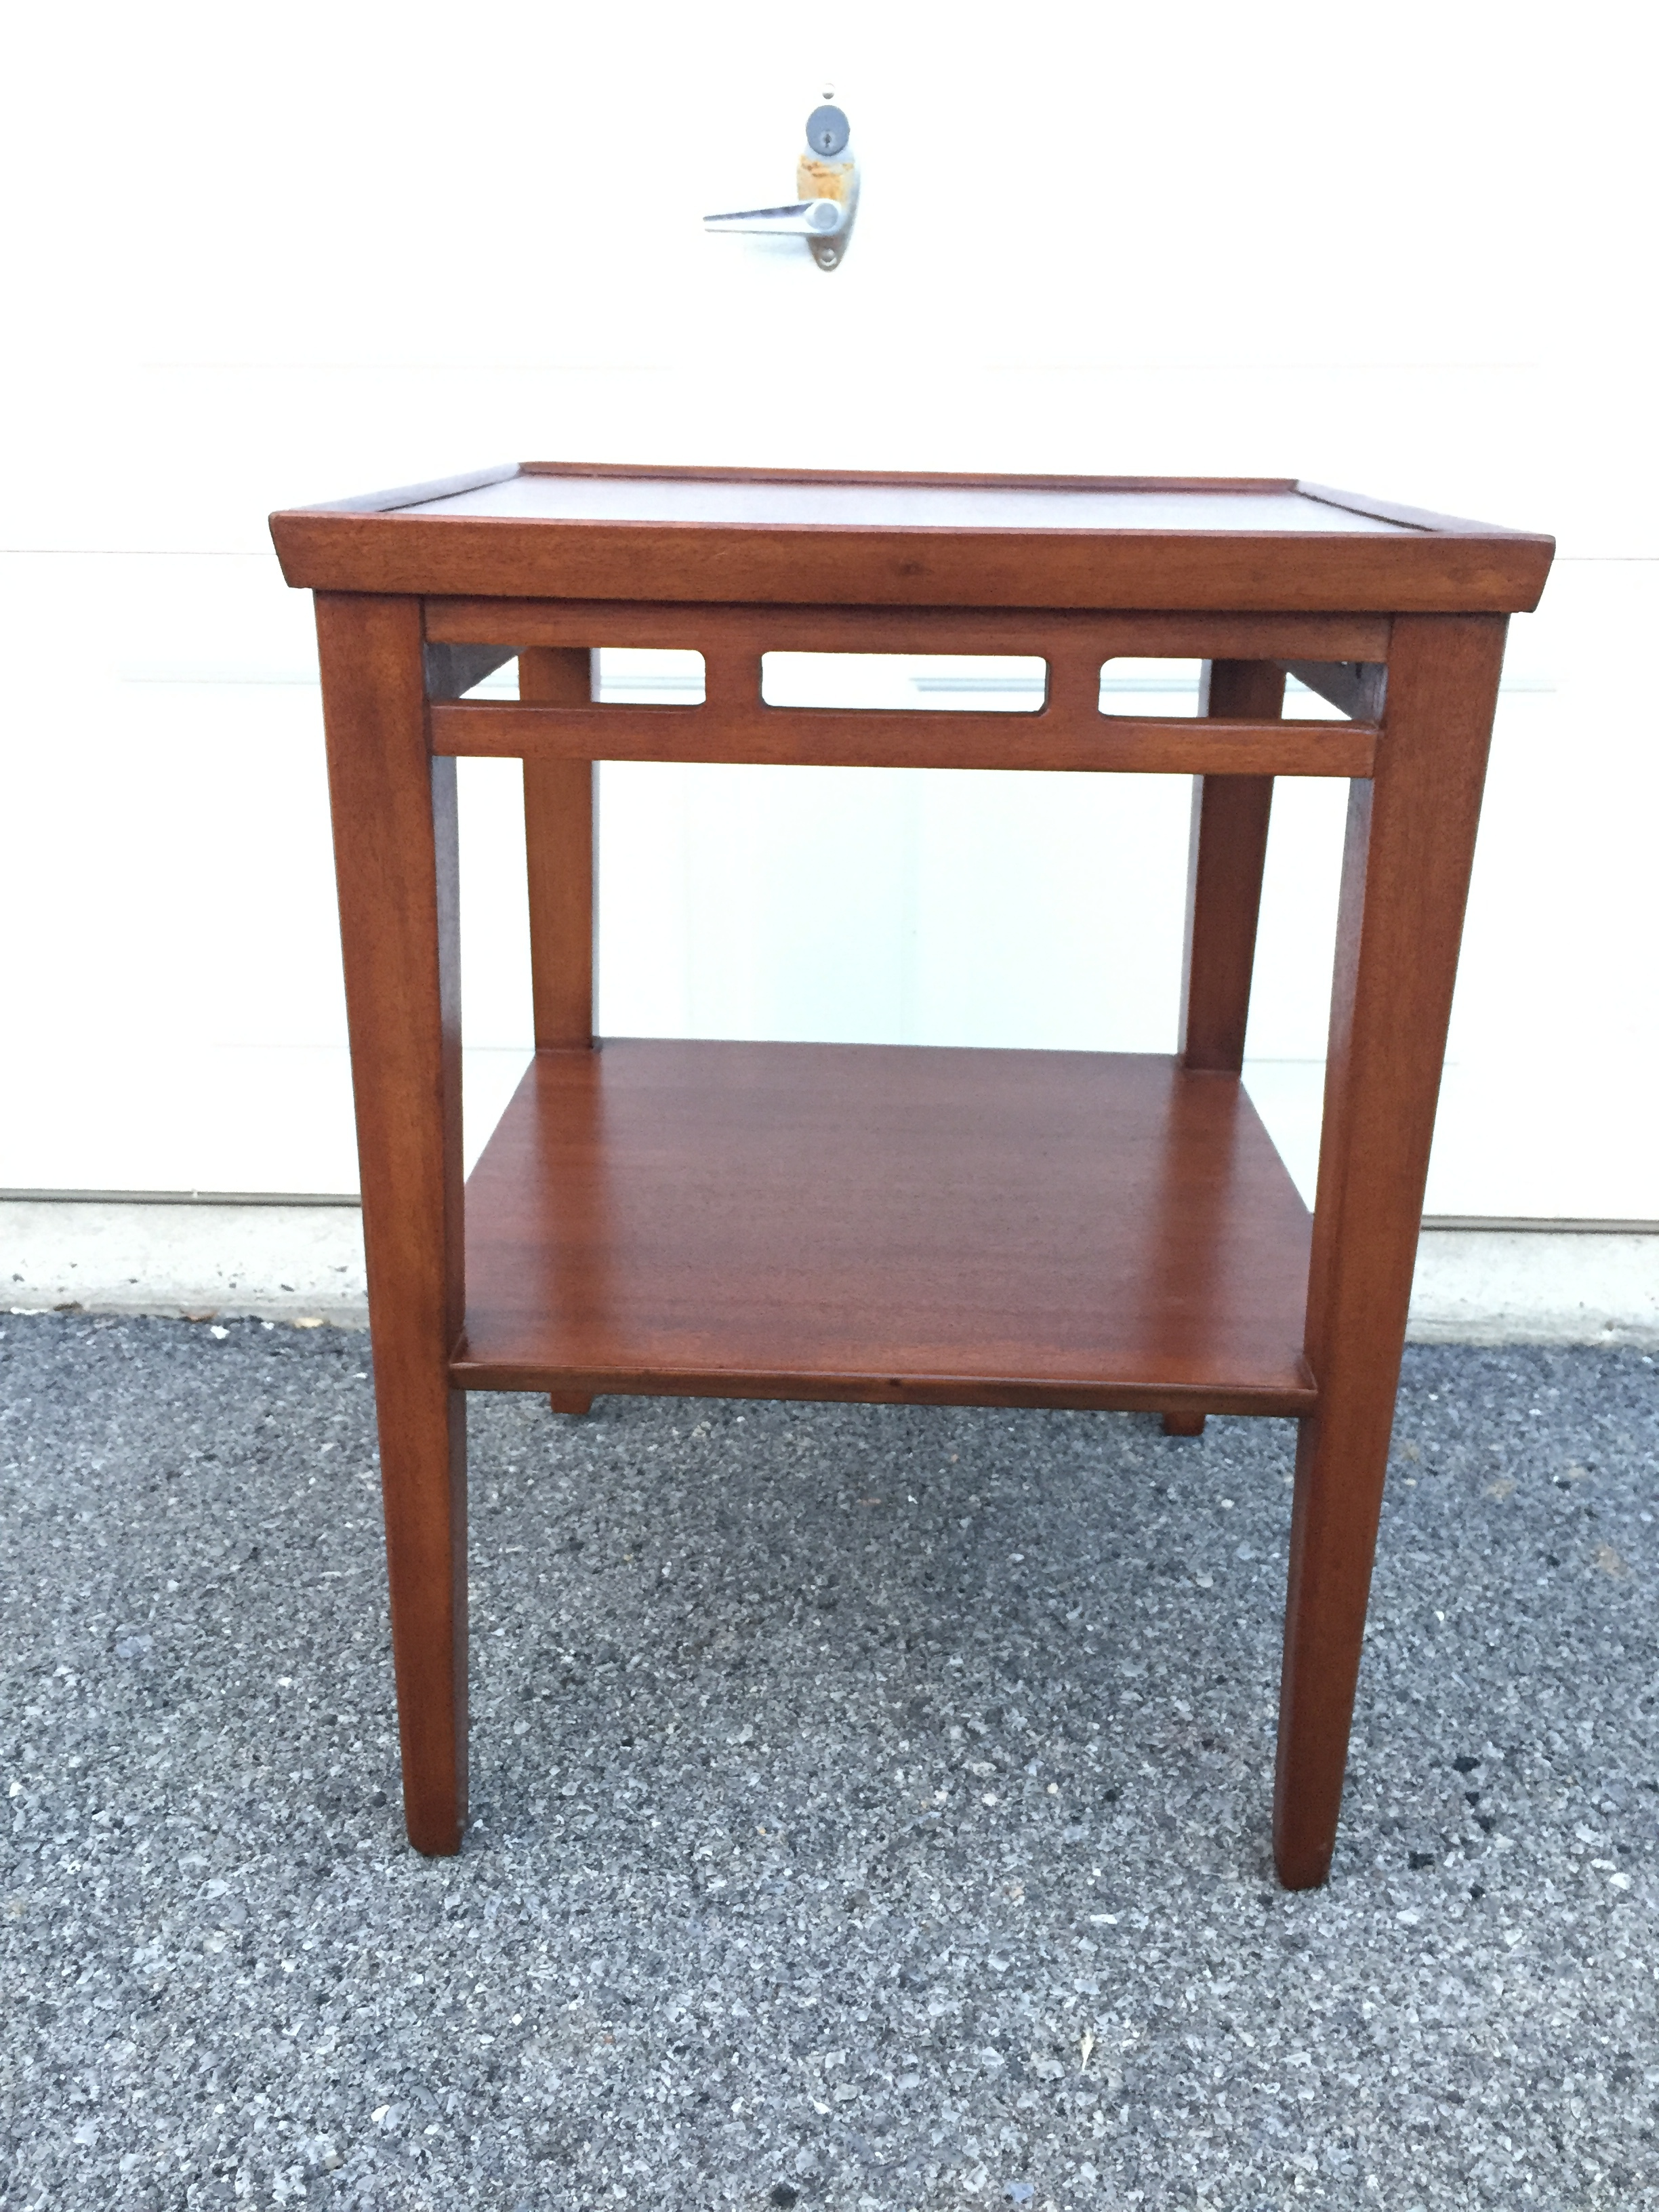 Also just in: mahogany accent or lamp table. Beautiful piece in excellent condition. Great for mission and arts/crafts style. Will mix with mcm just fine. Very nicely made. Age and maker are unknown. Wood is gorgeous. High enough to hold a lamp next to your couch or a chair.